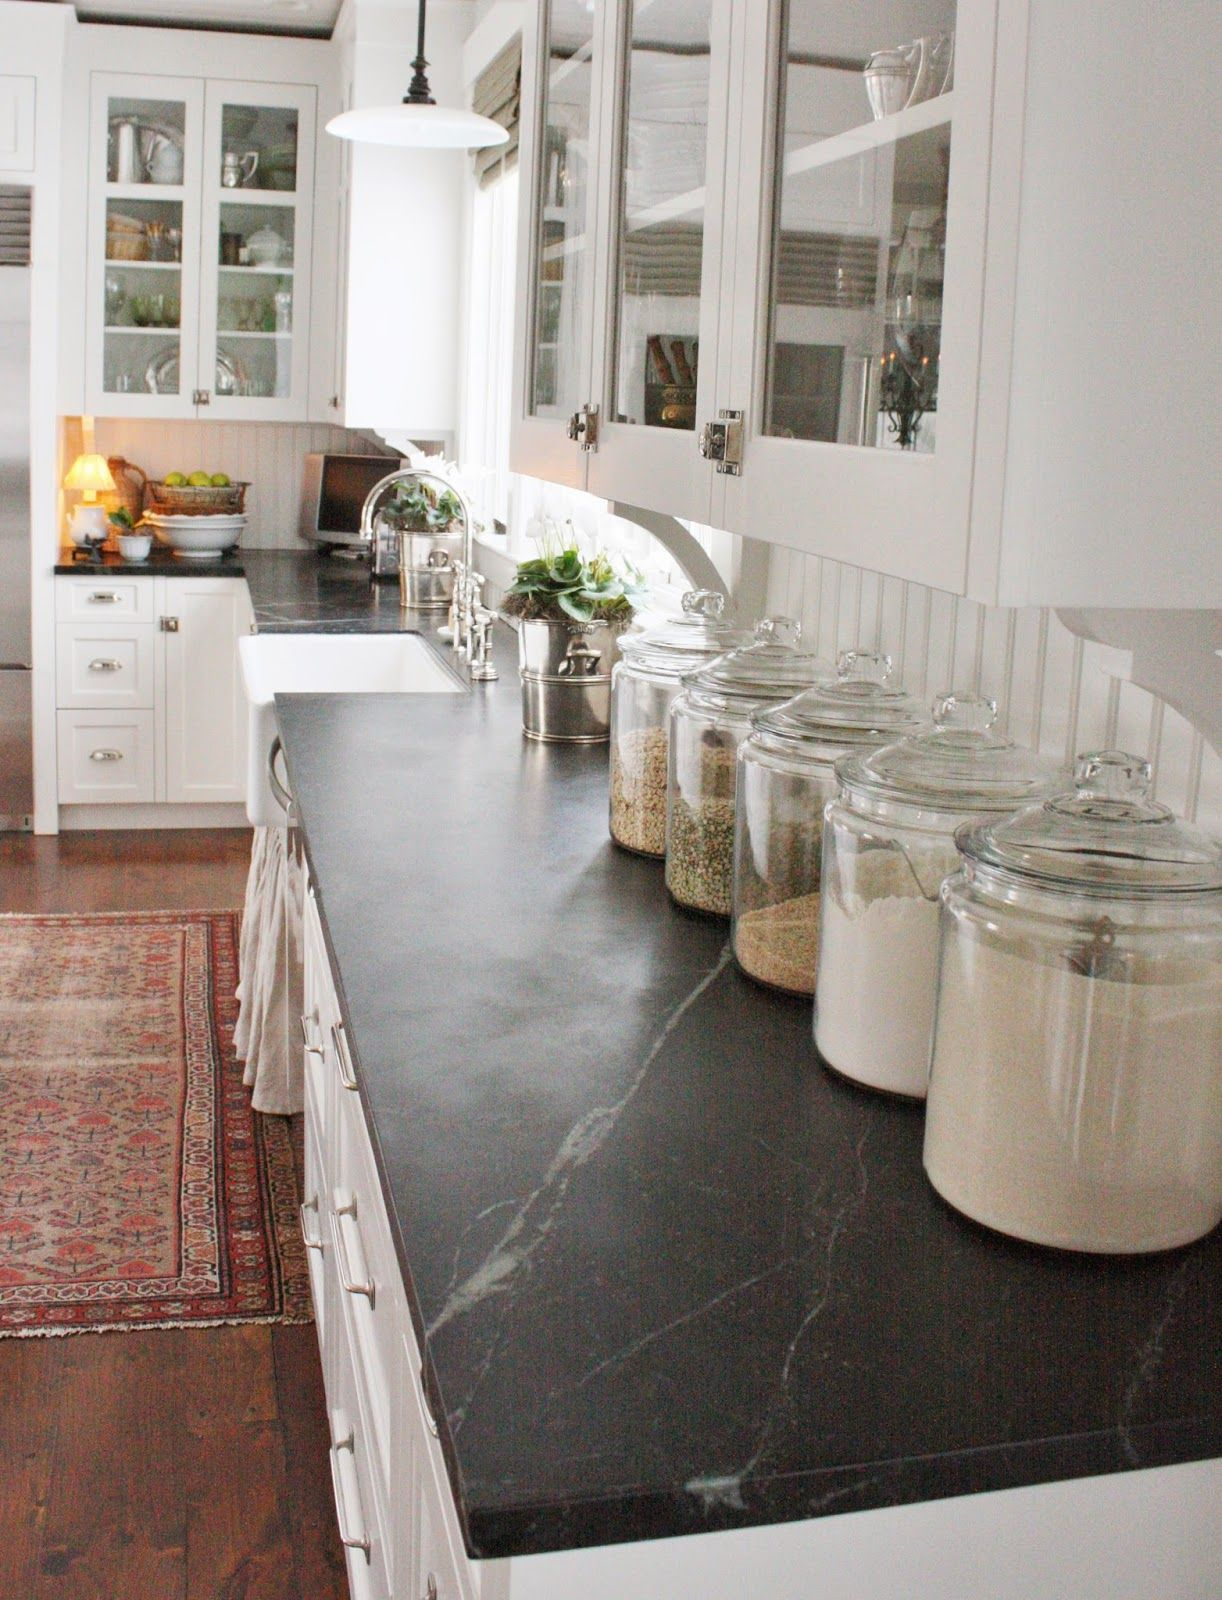 decorating with glass canisters in the kitchen glass canisters decorating with glass canisters in the kitchen photo via for the love of a house